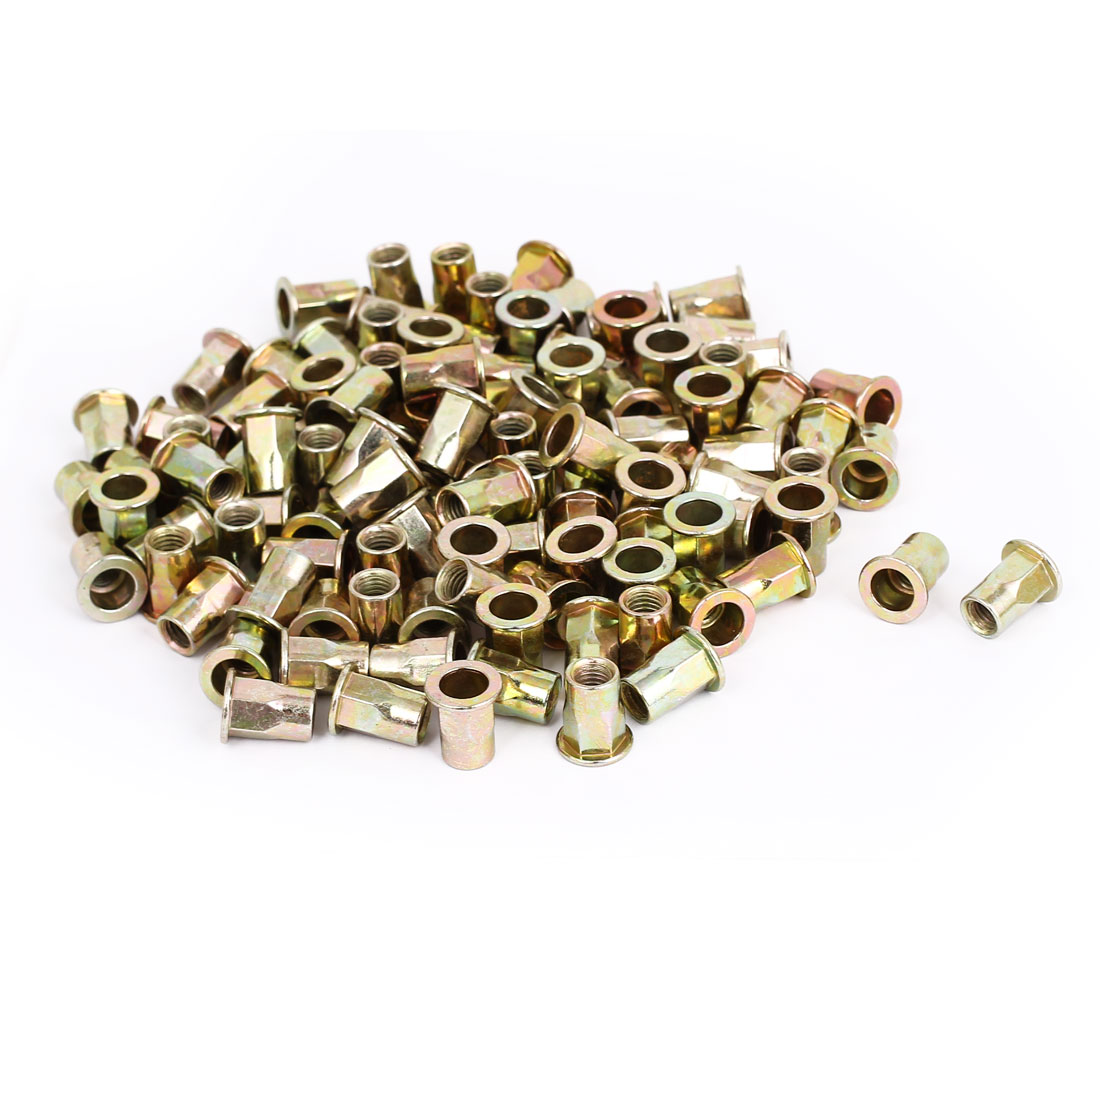 200pcs M8x18mm Flat Head Half Hex Body Threaded Blind Rivet Nuts Insert Nutserts